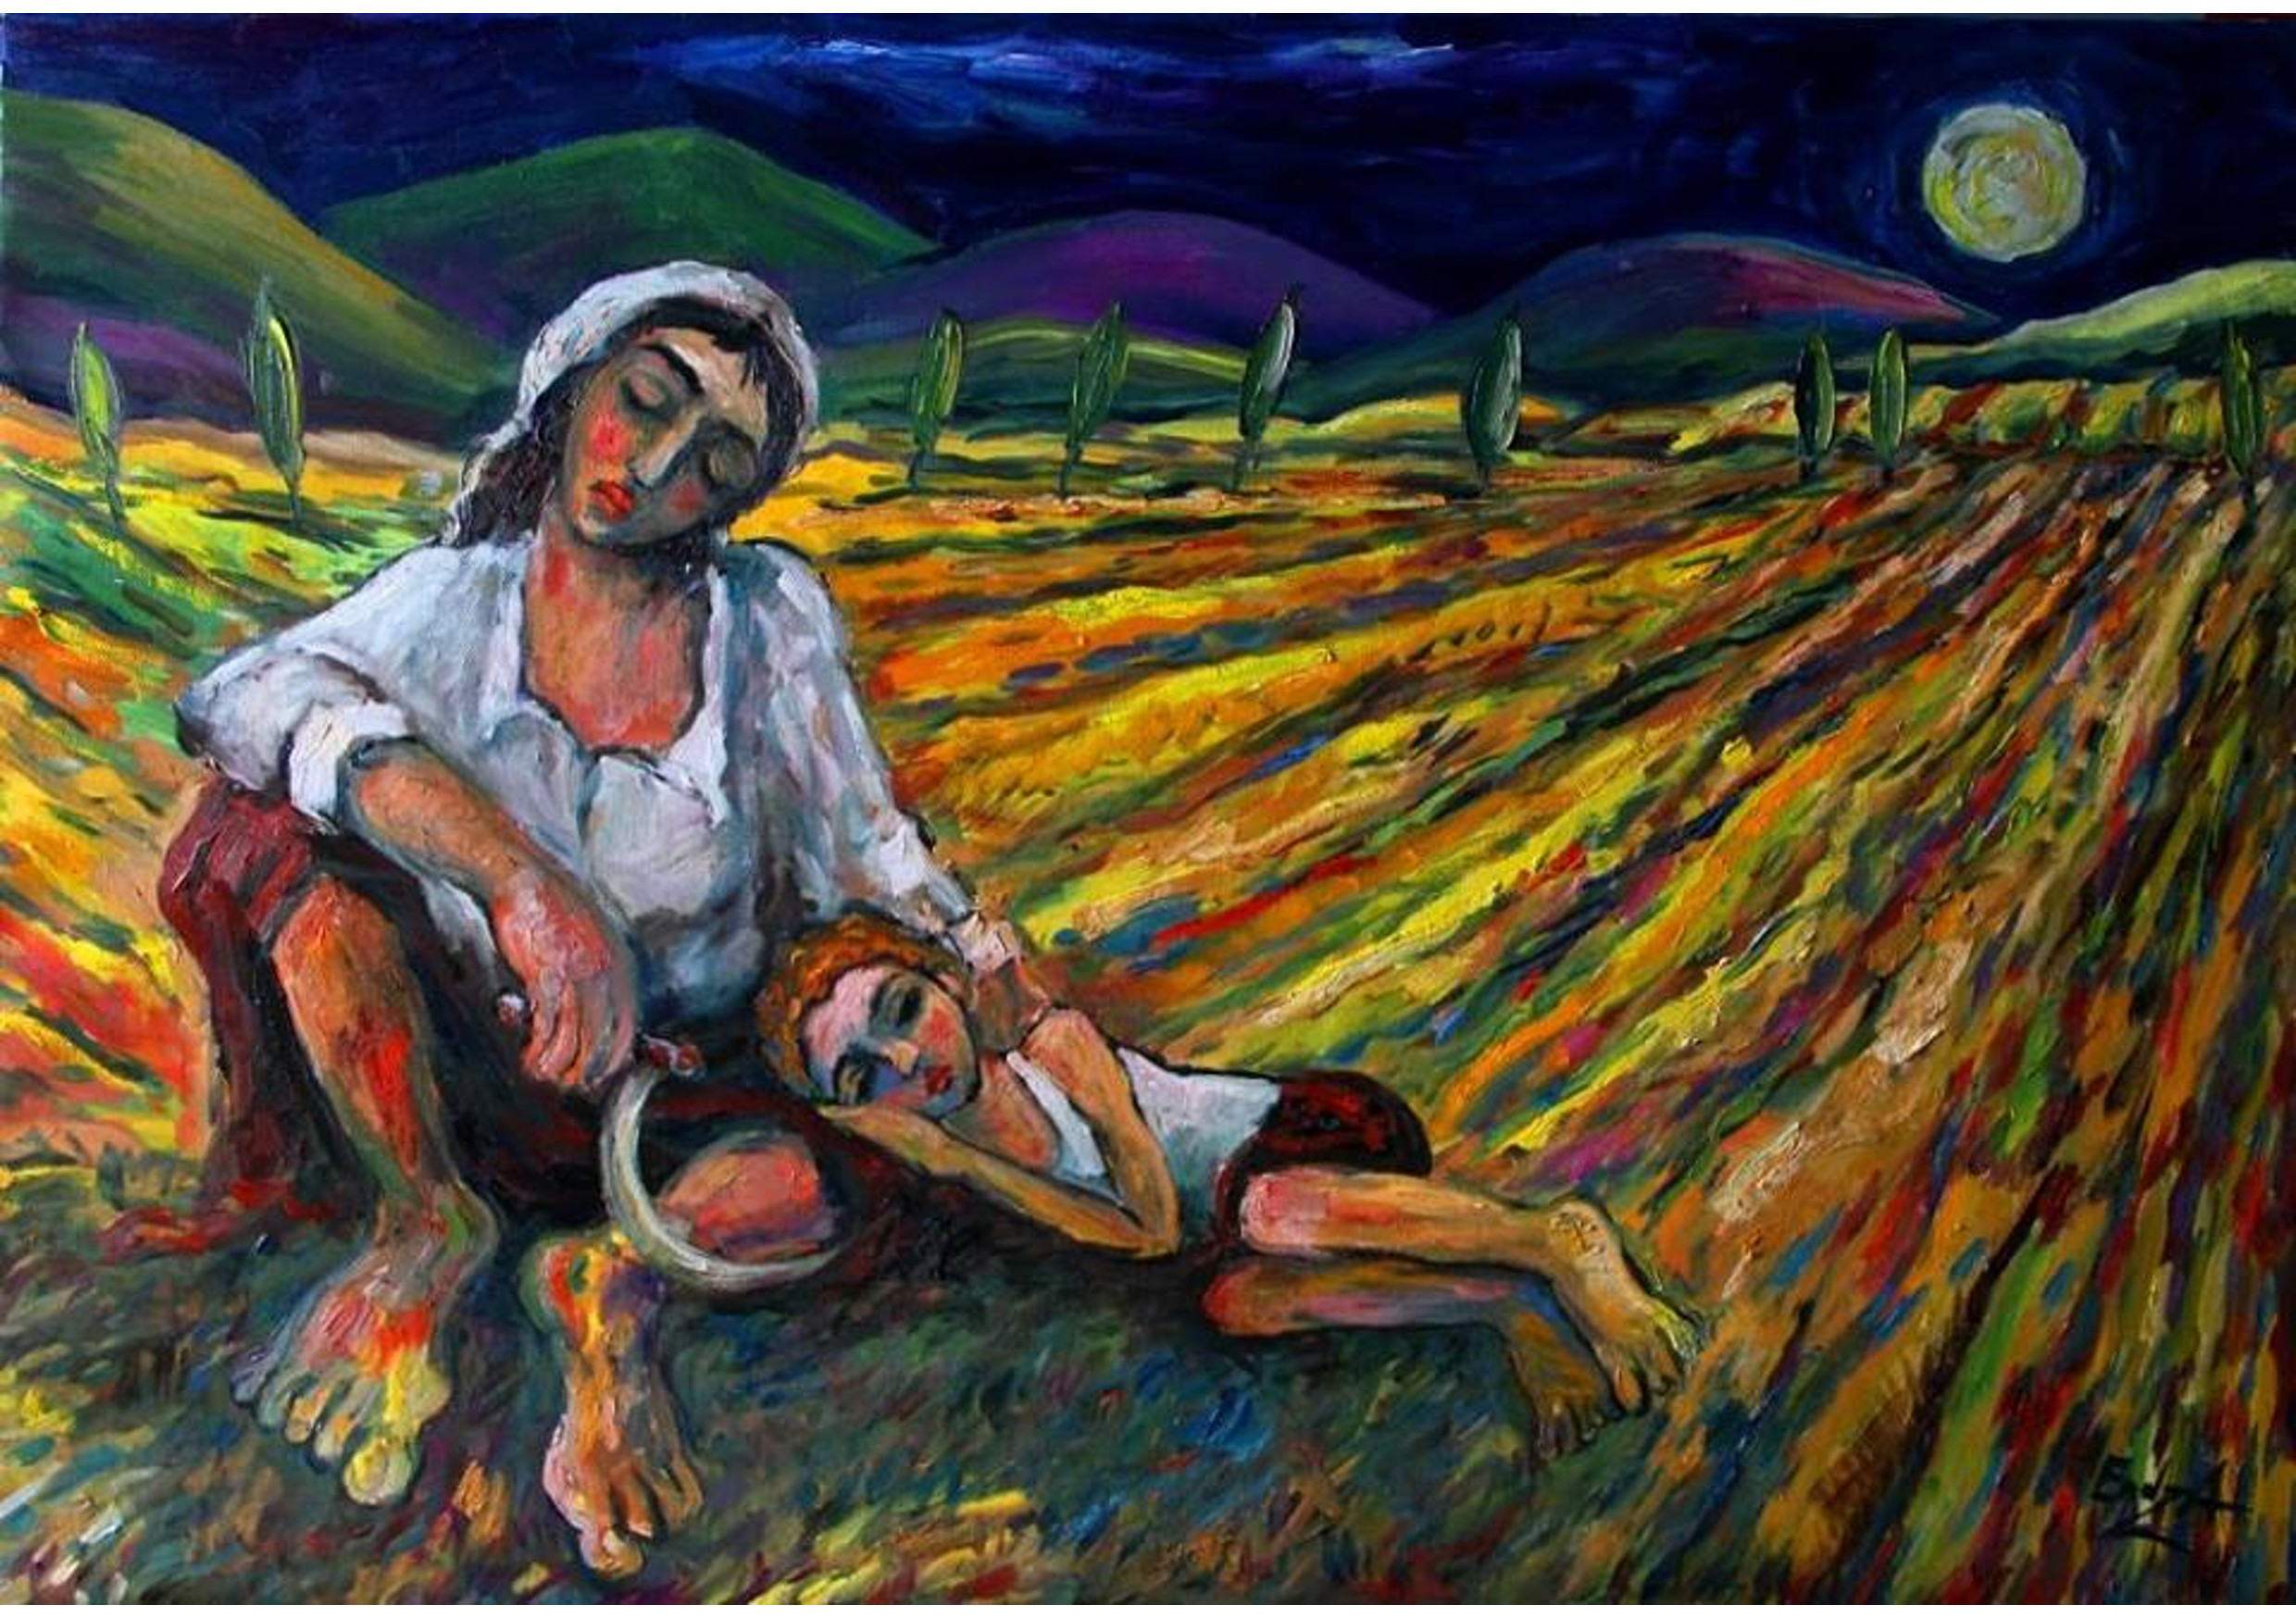 In the field, Oil on canvas, 70 x 100 cm